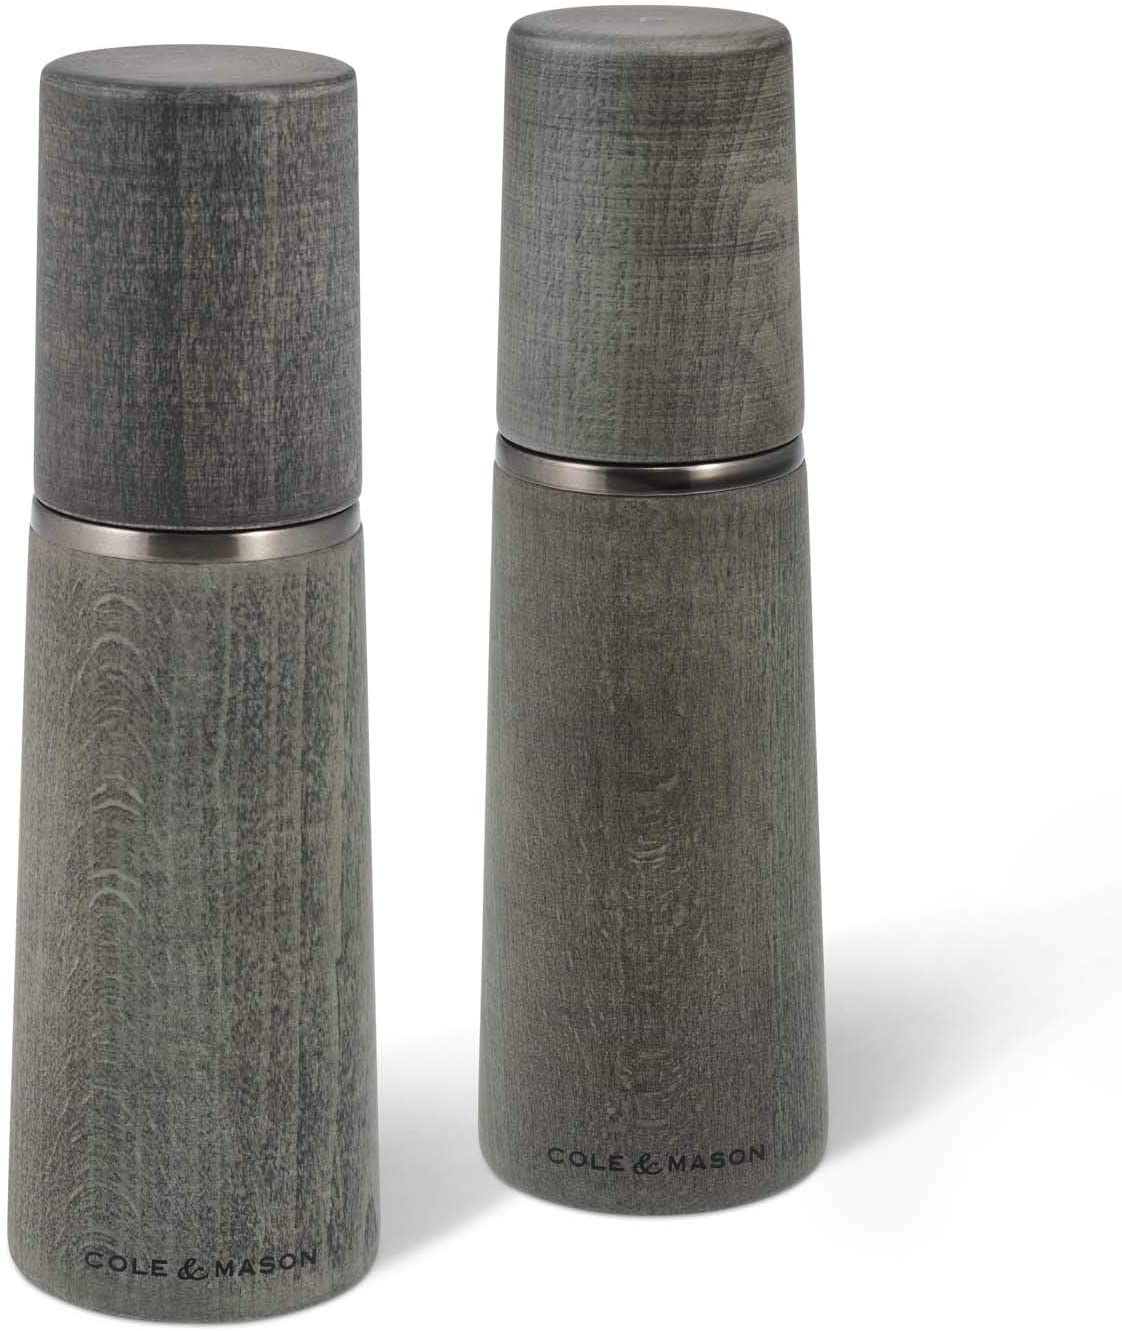 Popular brand Marlow Salt and Pepper 185 mm New product type Mill Set